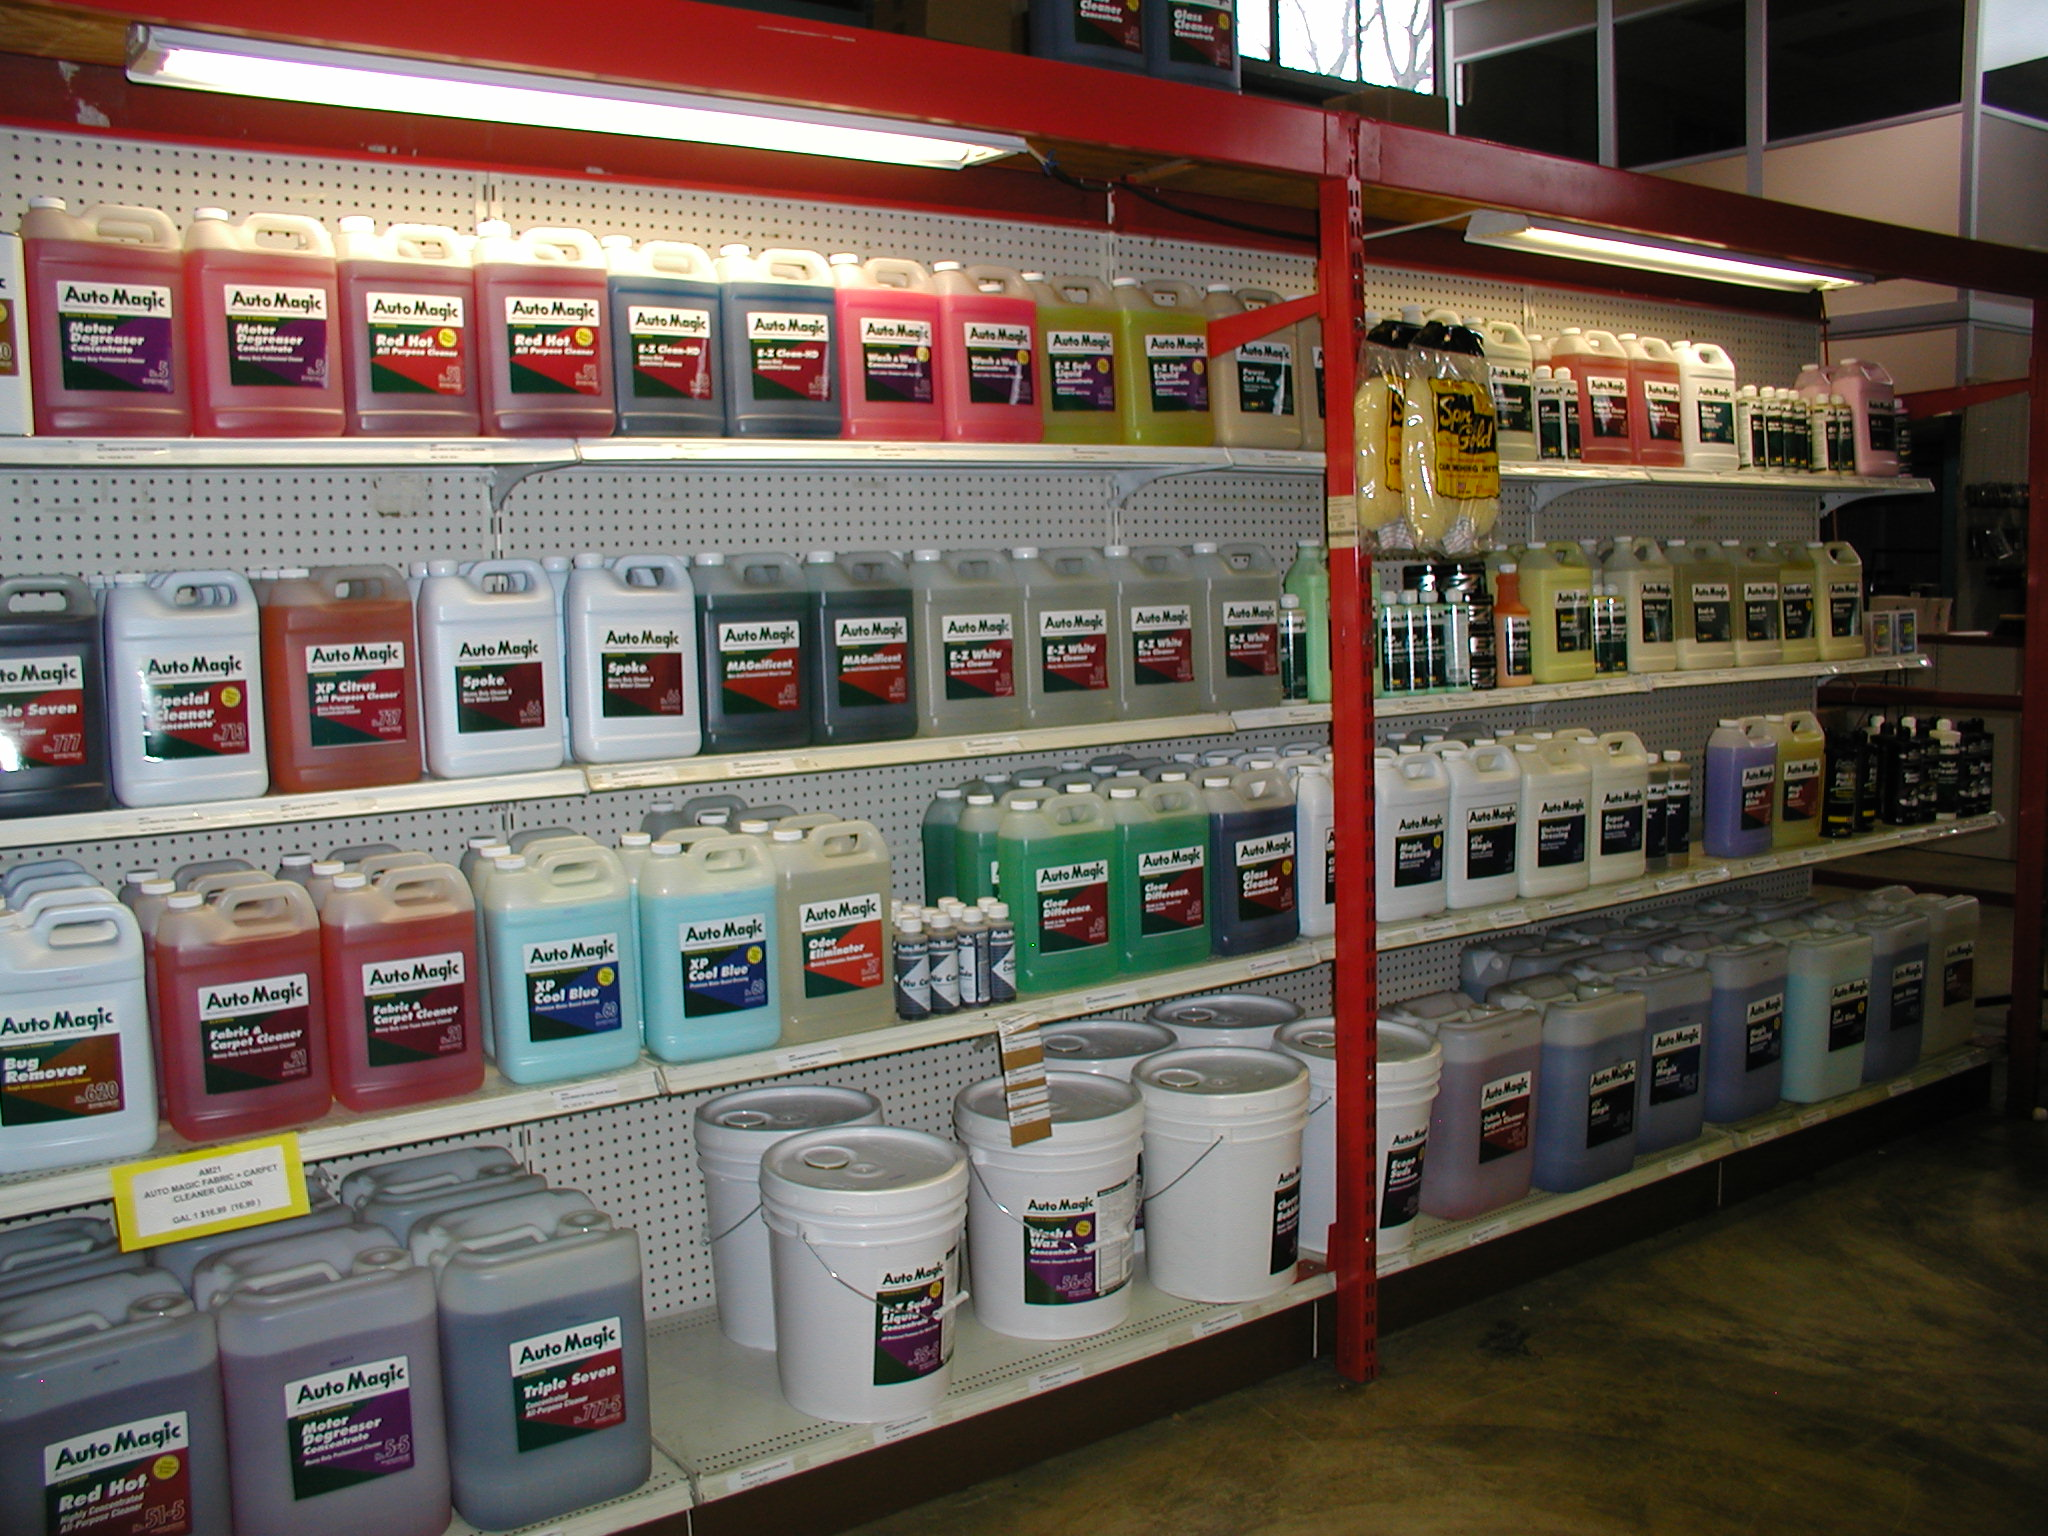 http://chartauto.com/wp-content/uploads/2015/05/Detailing-Products-2.jpg